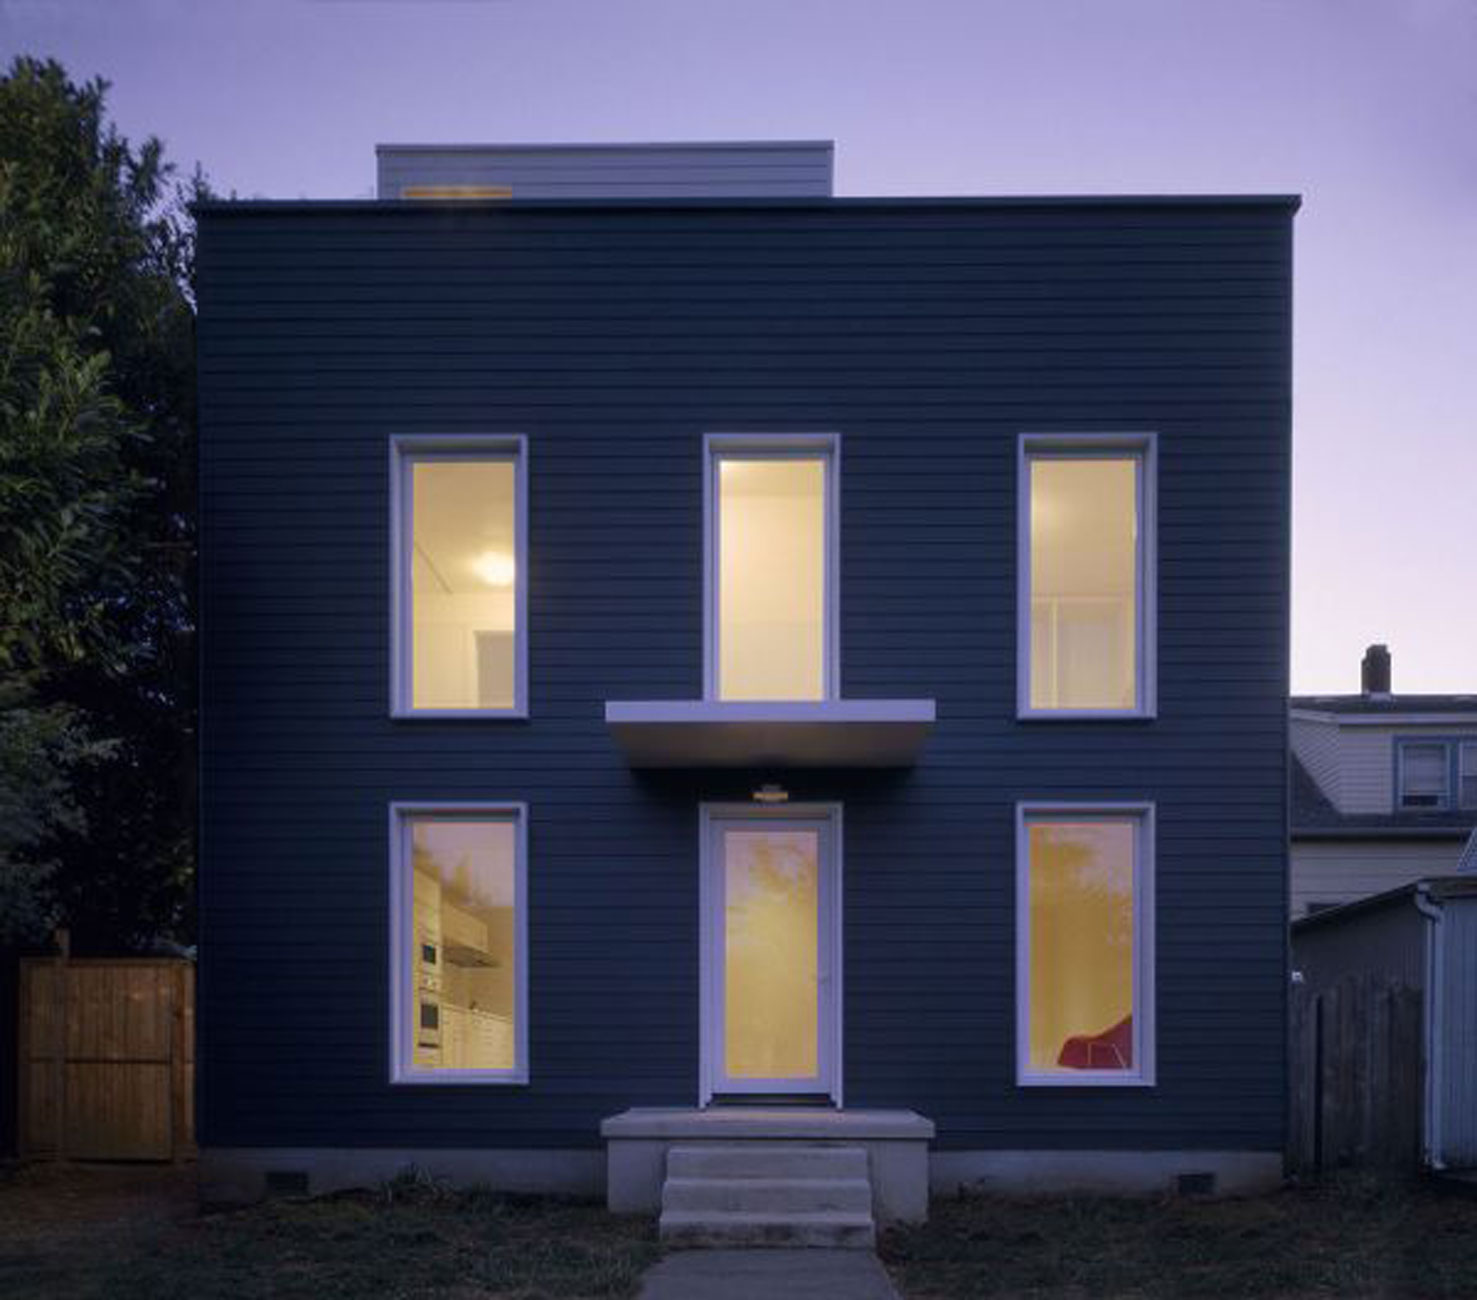 Beautiful Old House Renovated into A Minimalist Style House Design - Windows